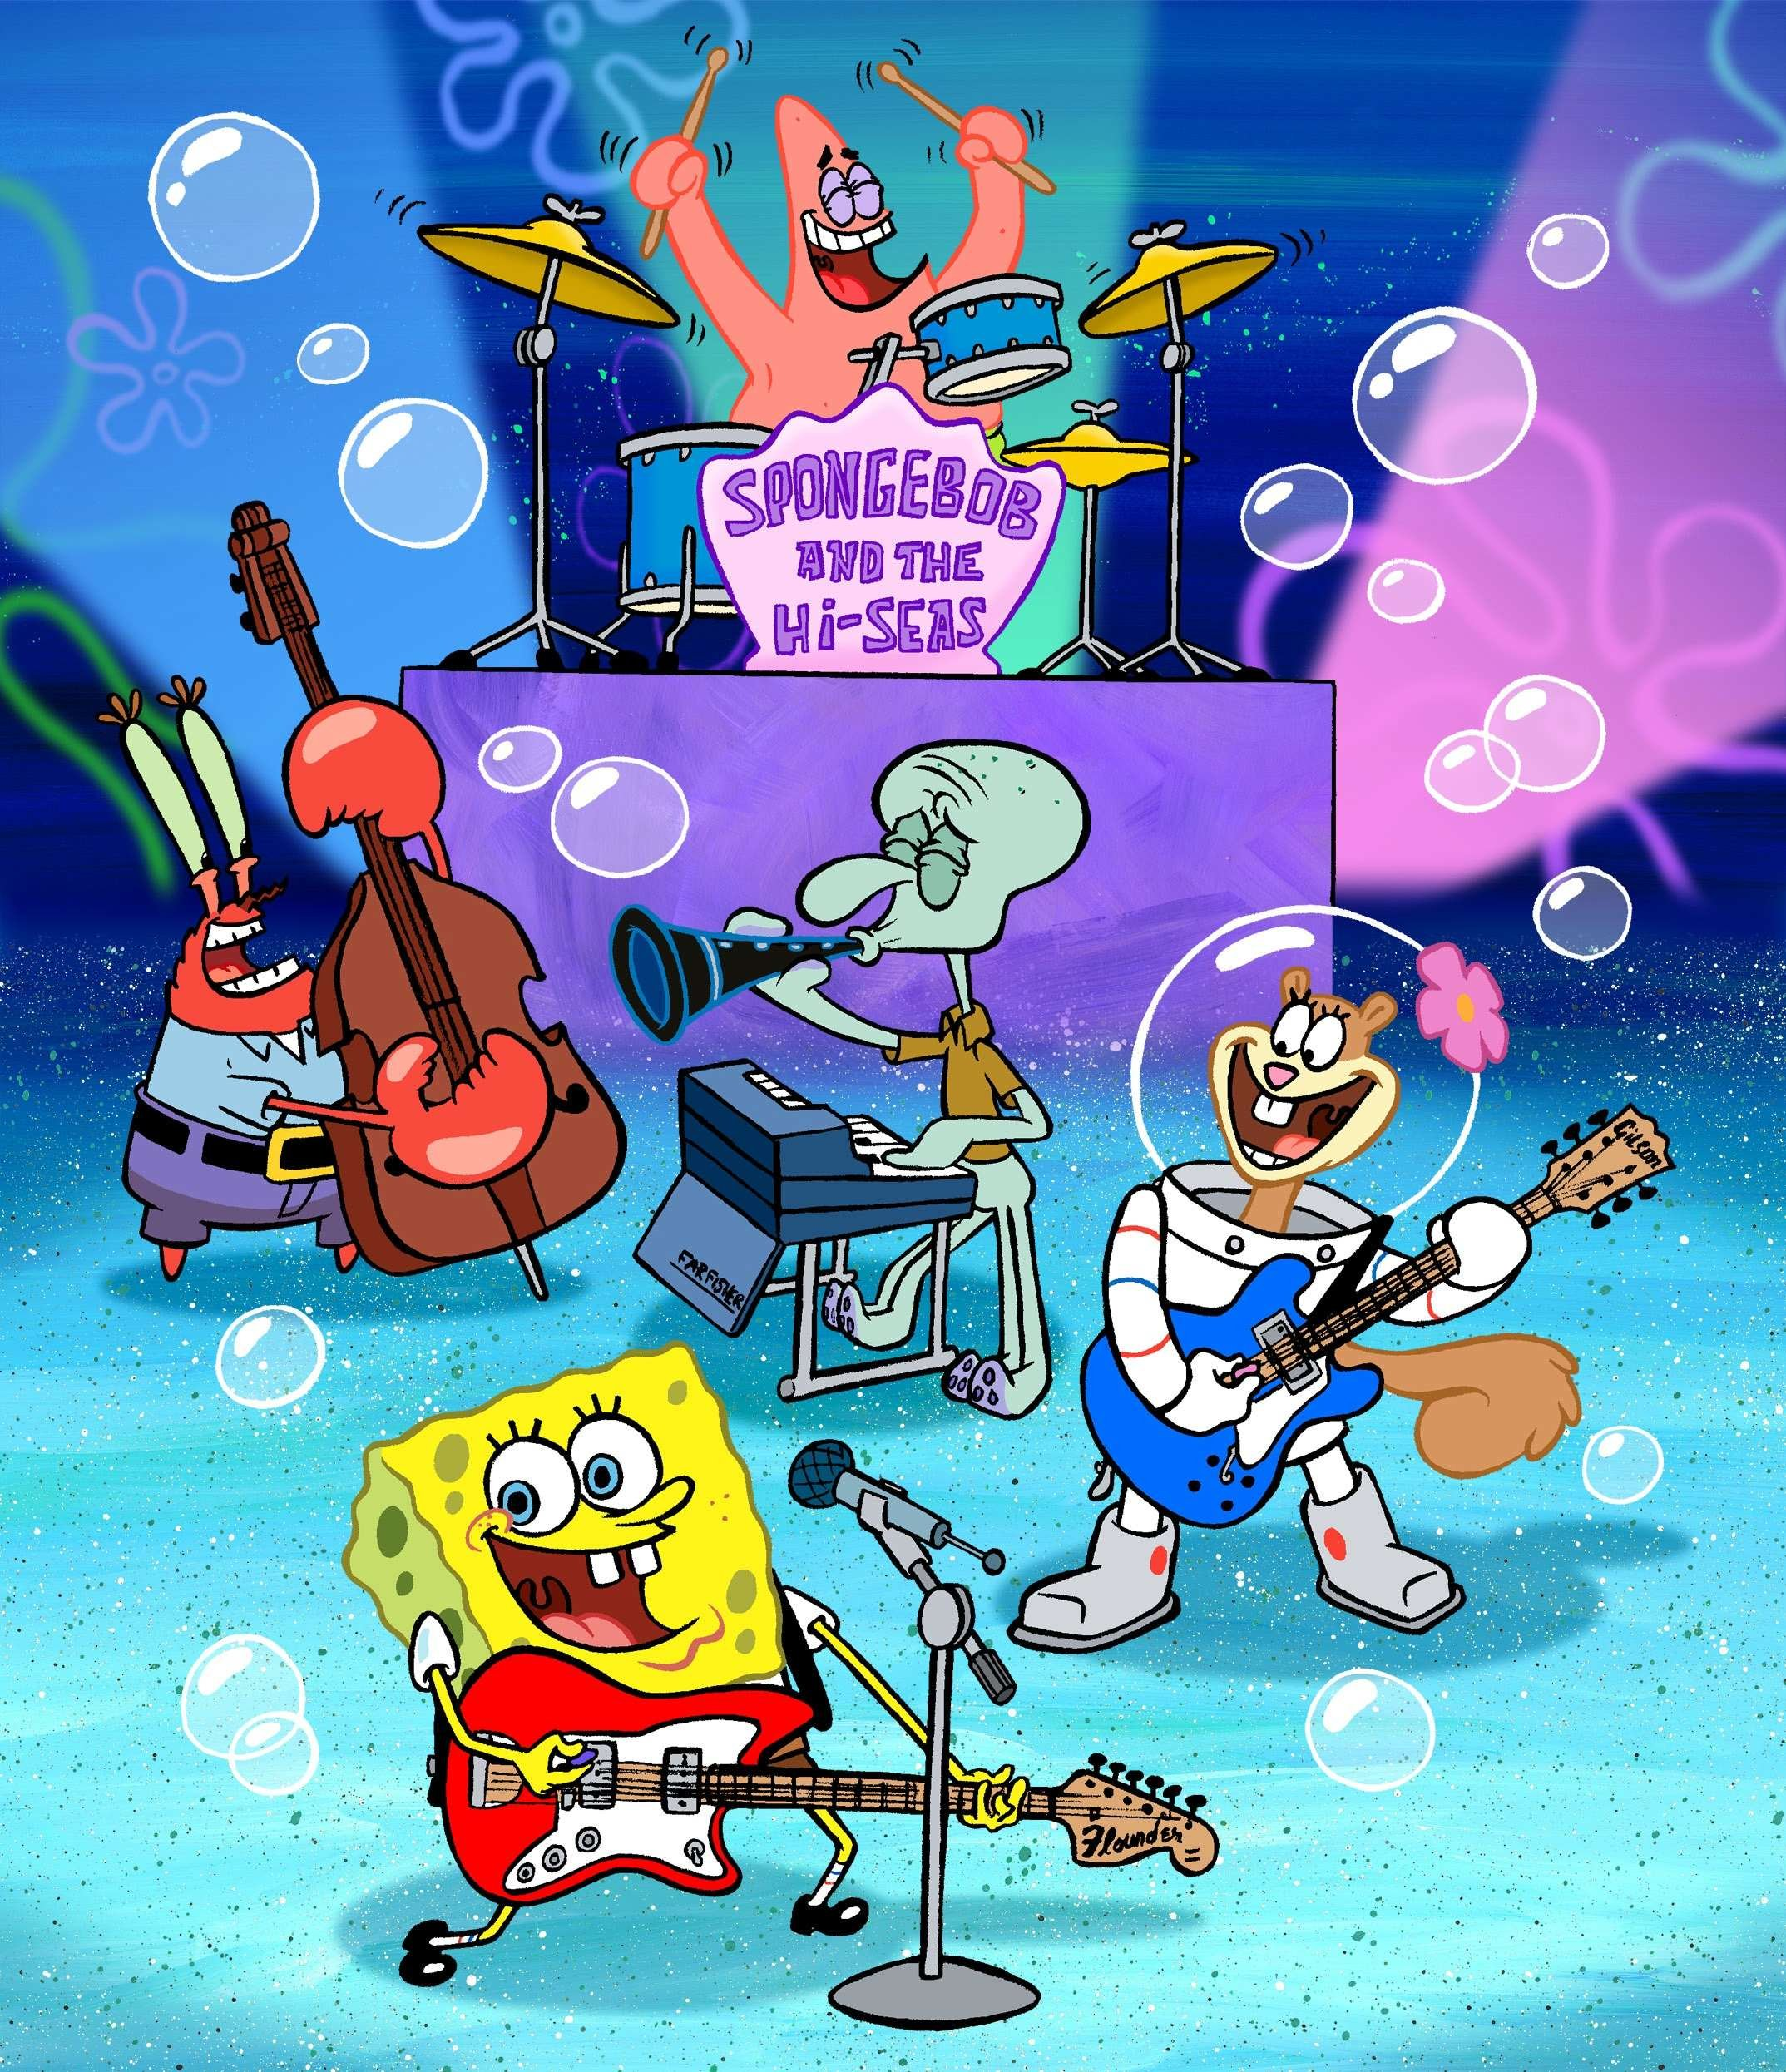 Spongebob Squarepants Images Spongebob S Band Wallpaper Hd Wallpaper